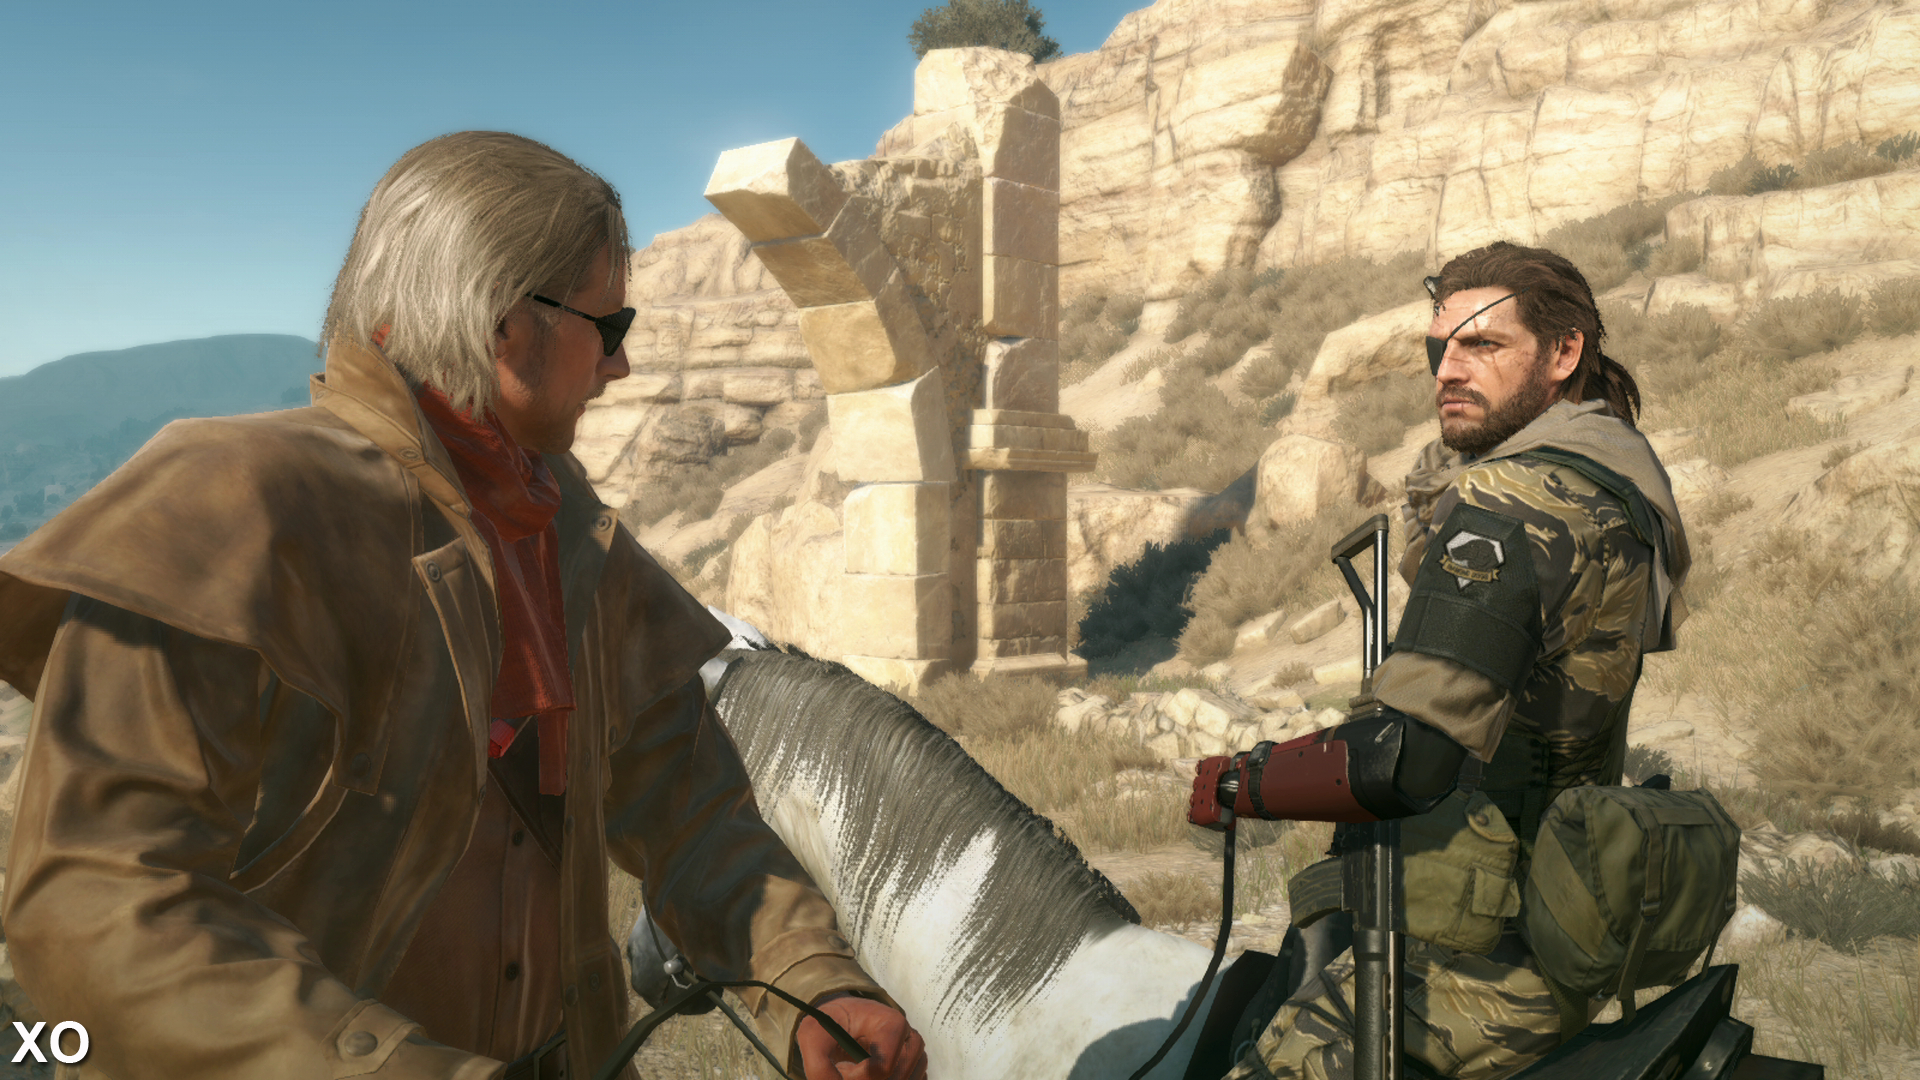 Digital Foundry: Hands-on with Metal Gear Solid 5